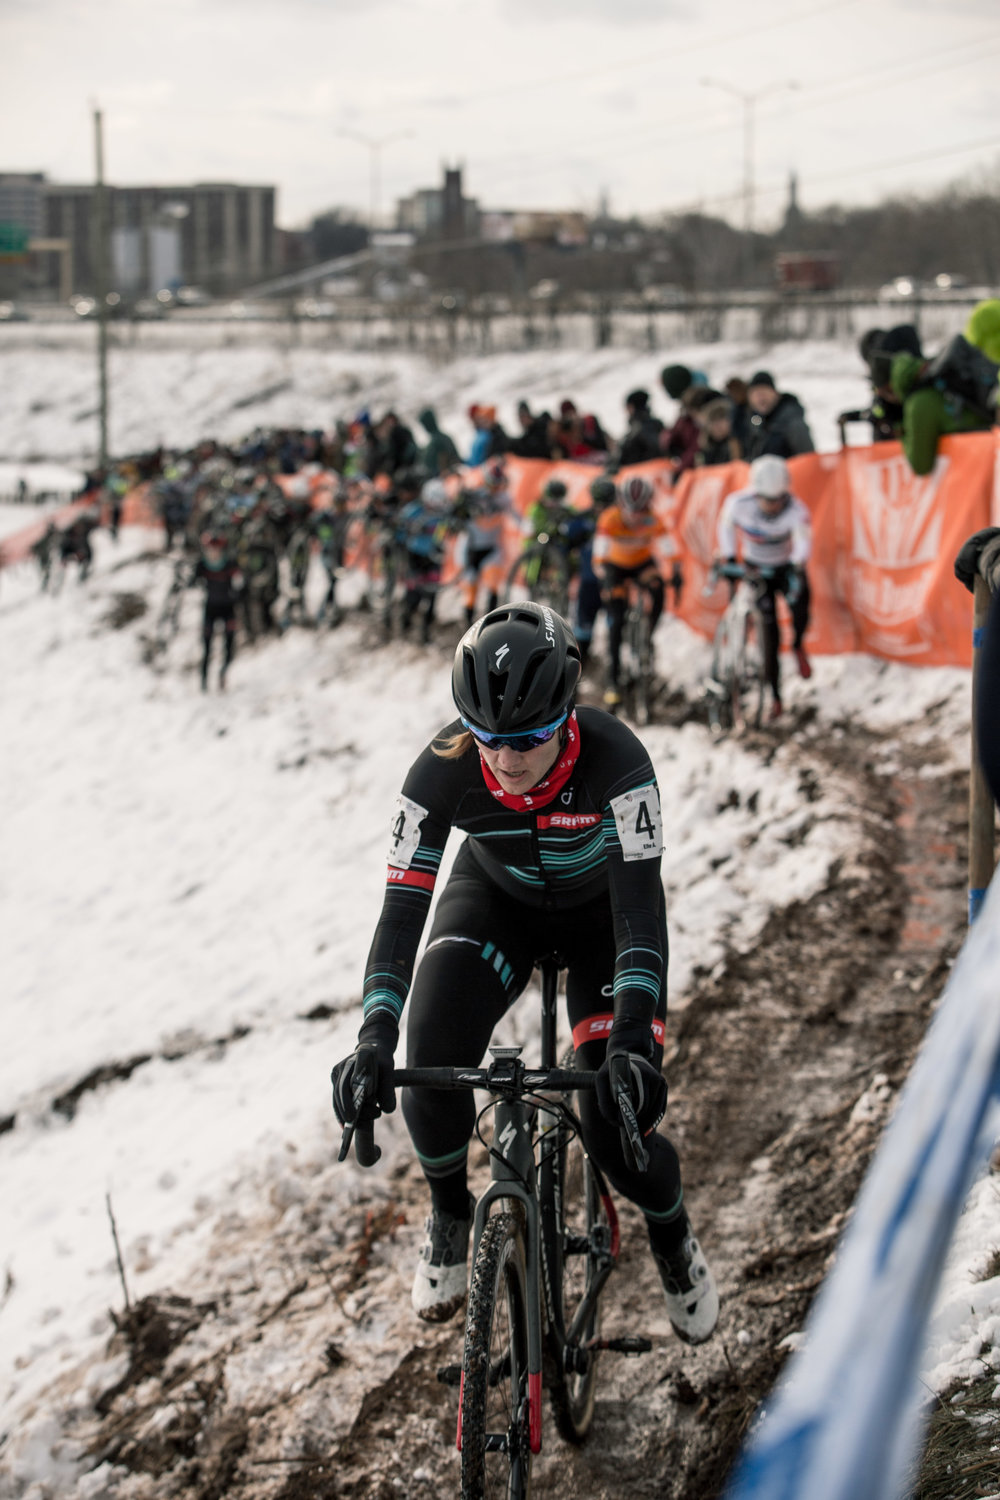 CX_NATS-Jan2017-web-2-2.jpg